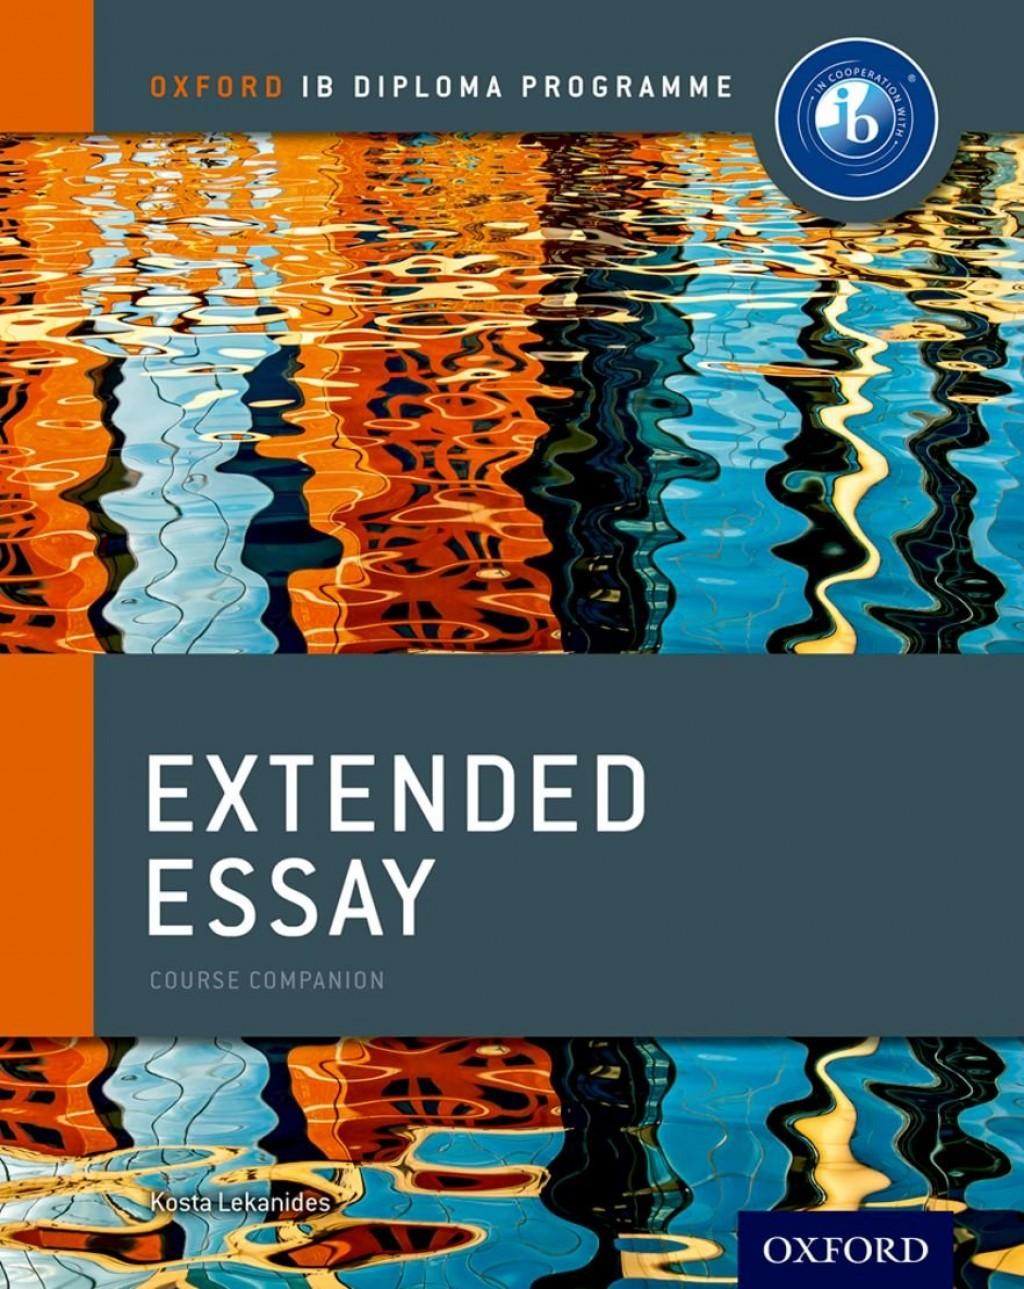 001 Essay Example 712bmr6n3mil Ib Marvelous Extended Topics History Biology Format Large